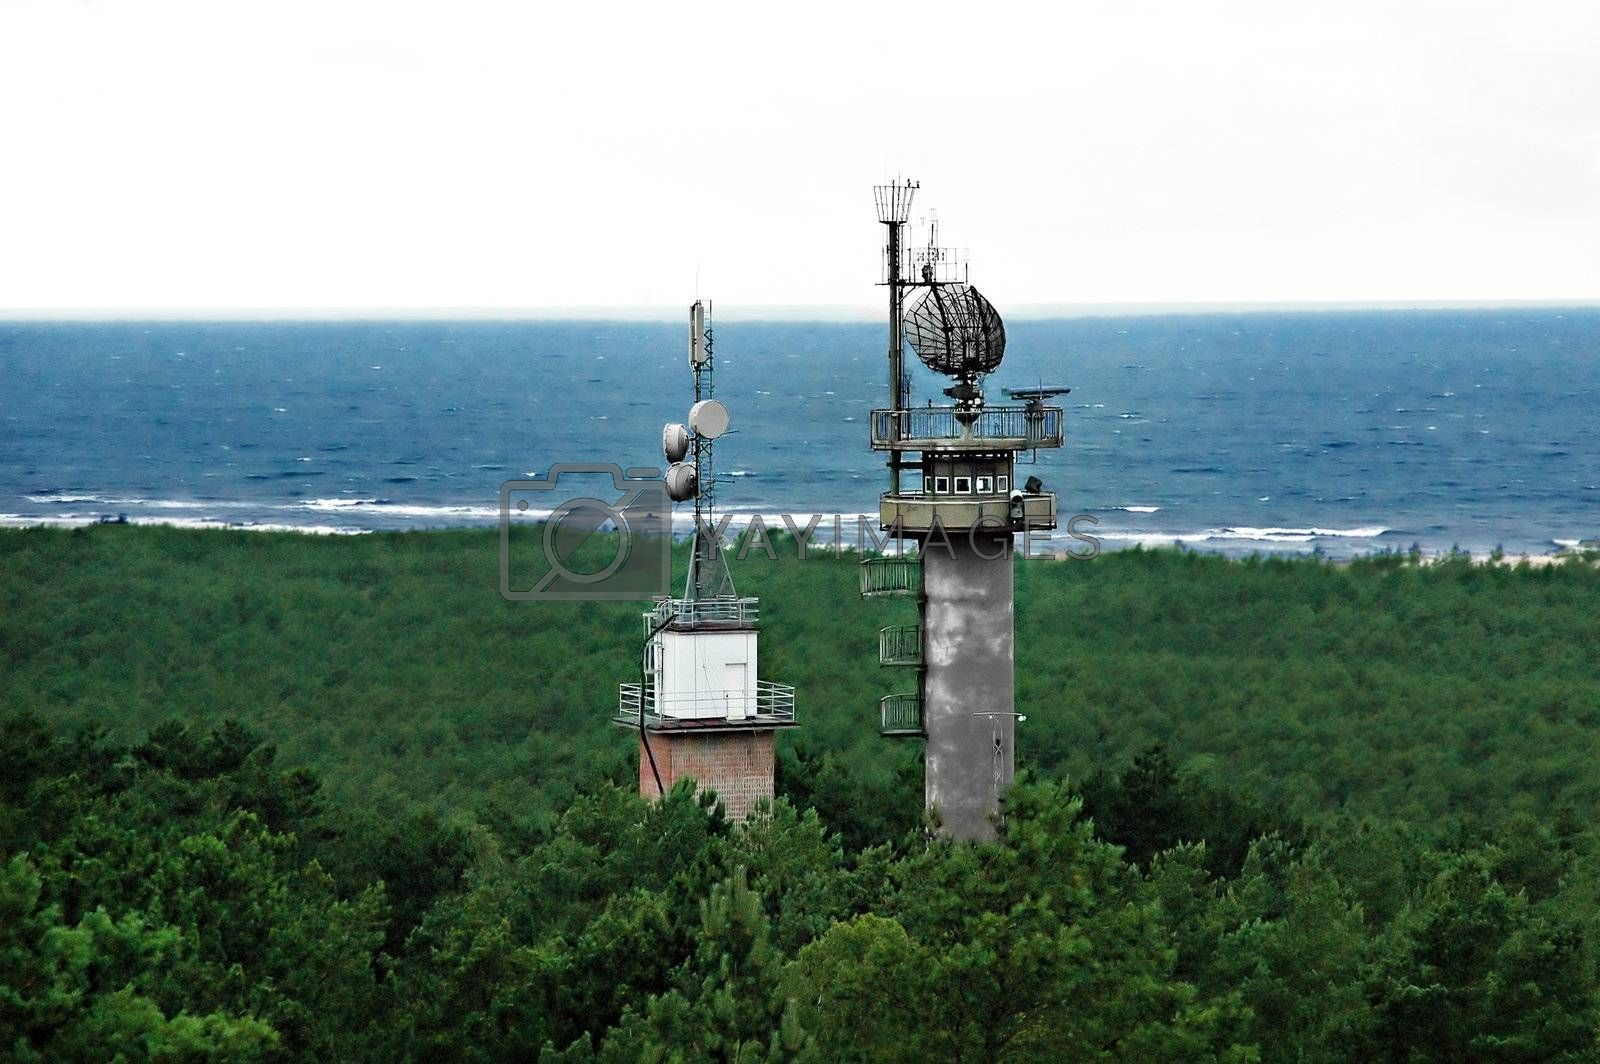 Military radar tower  in the forest near the sea shore